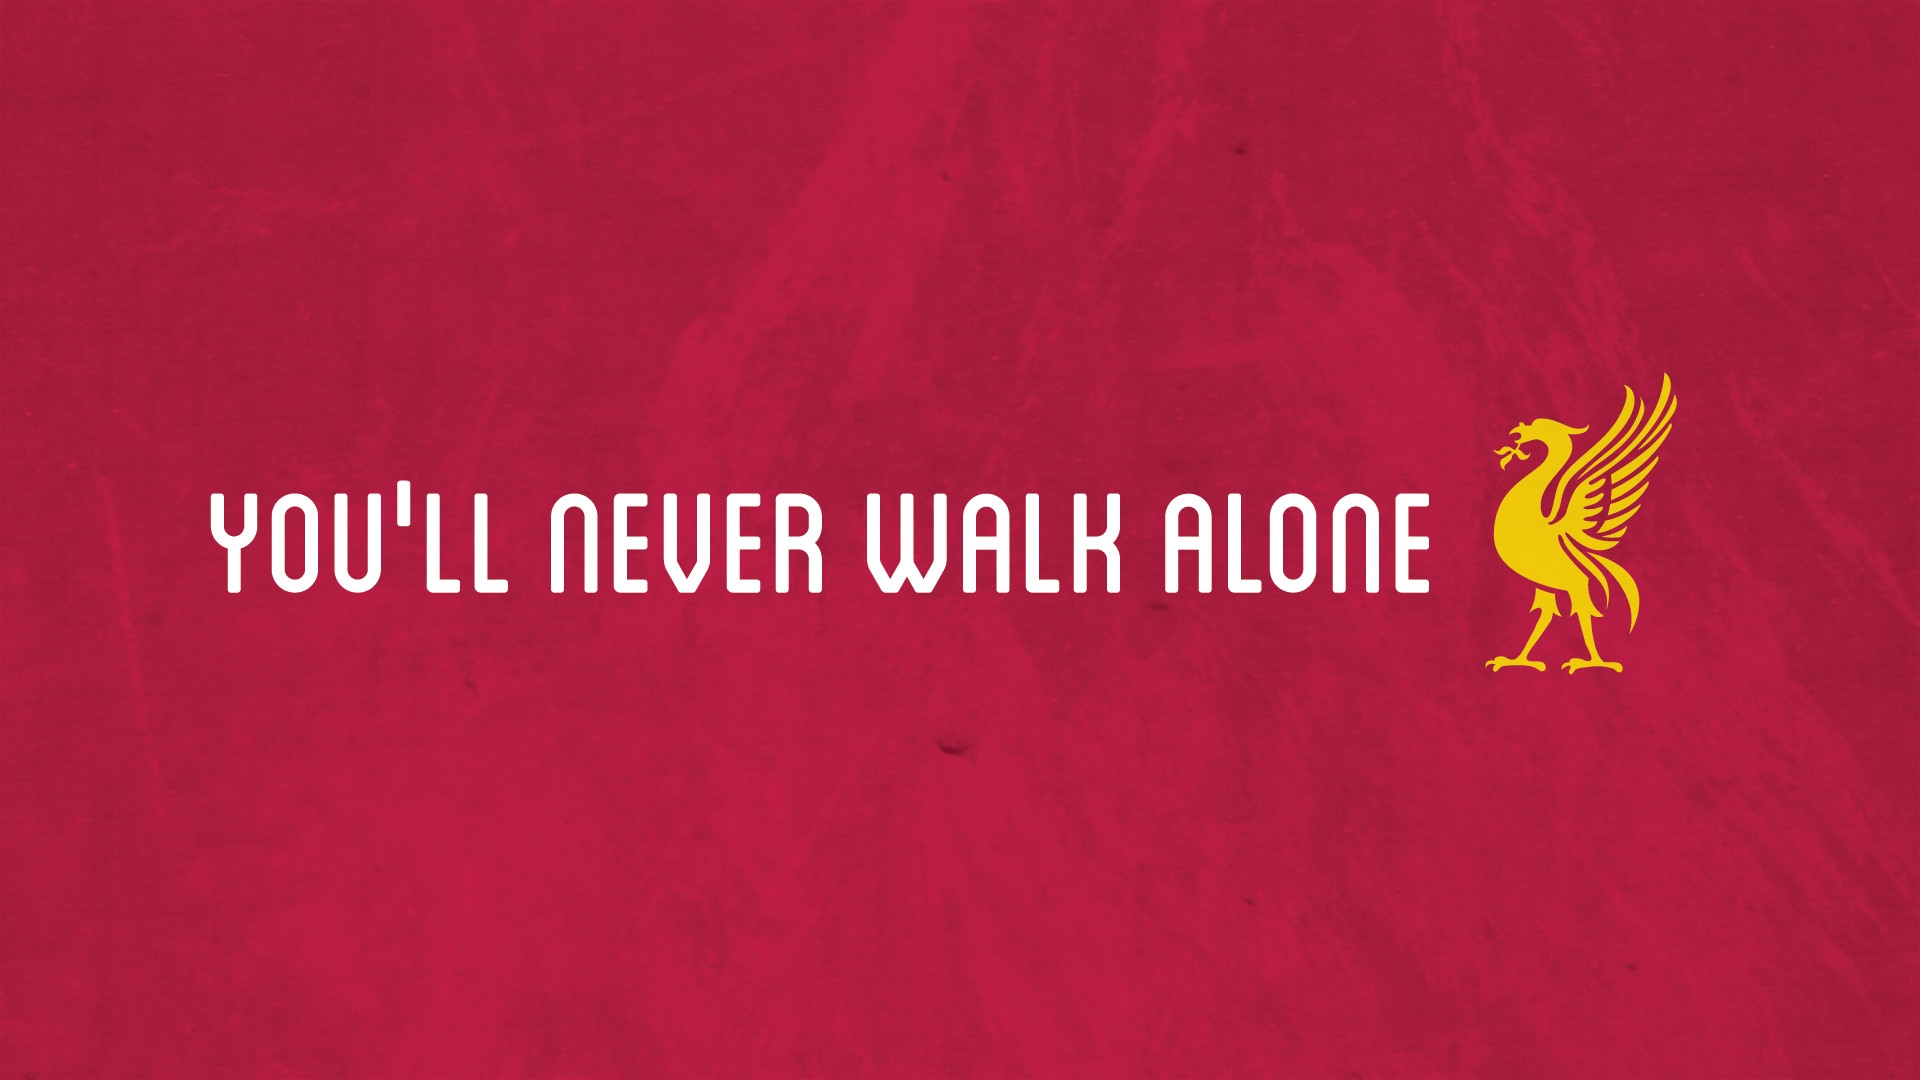 Ynwa Wallpapers (72+ Images